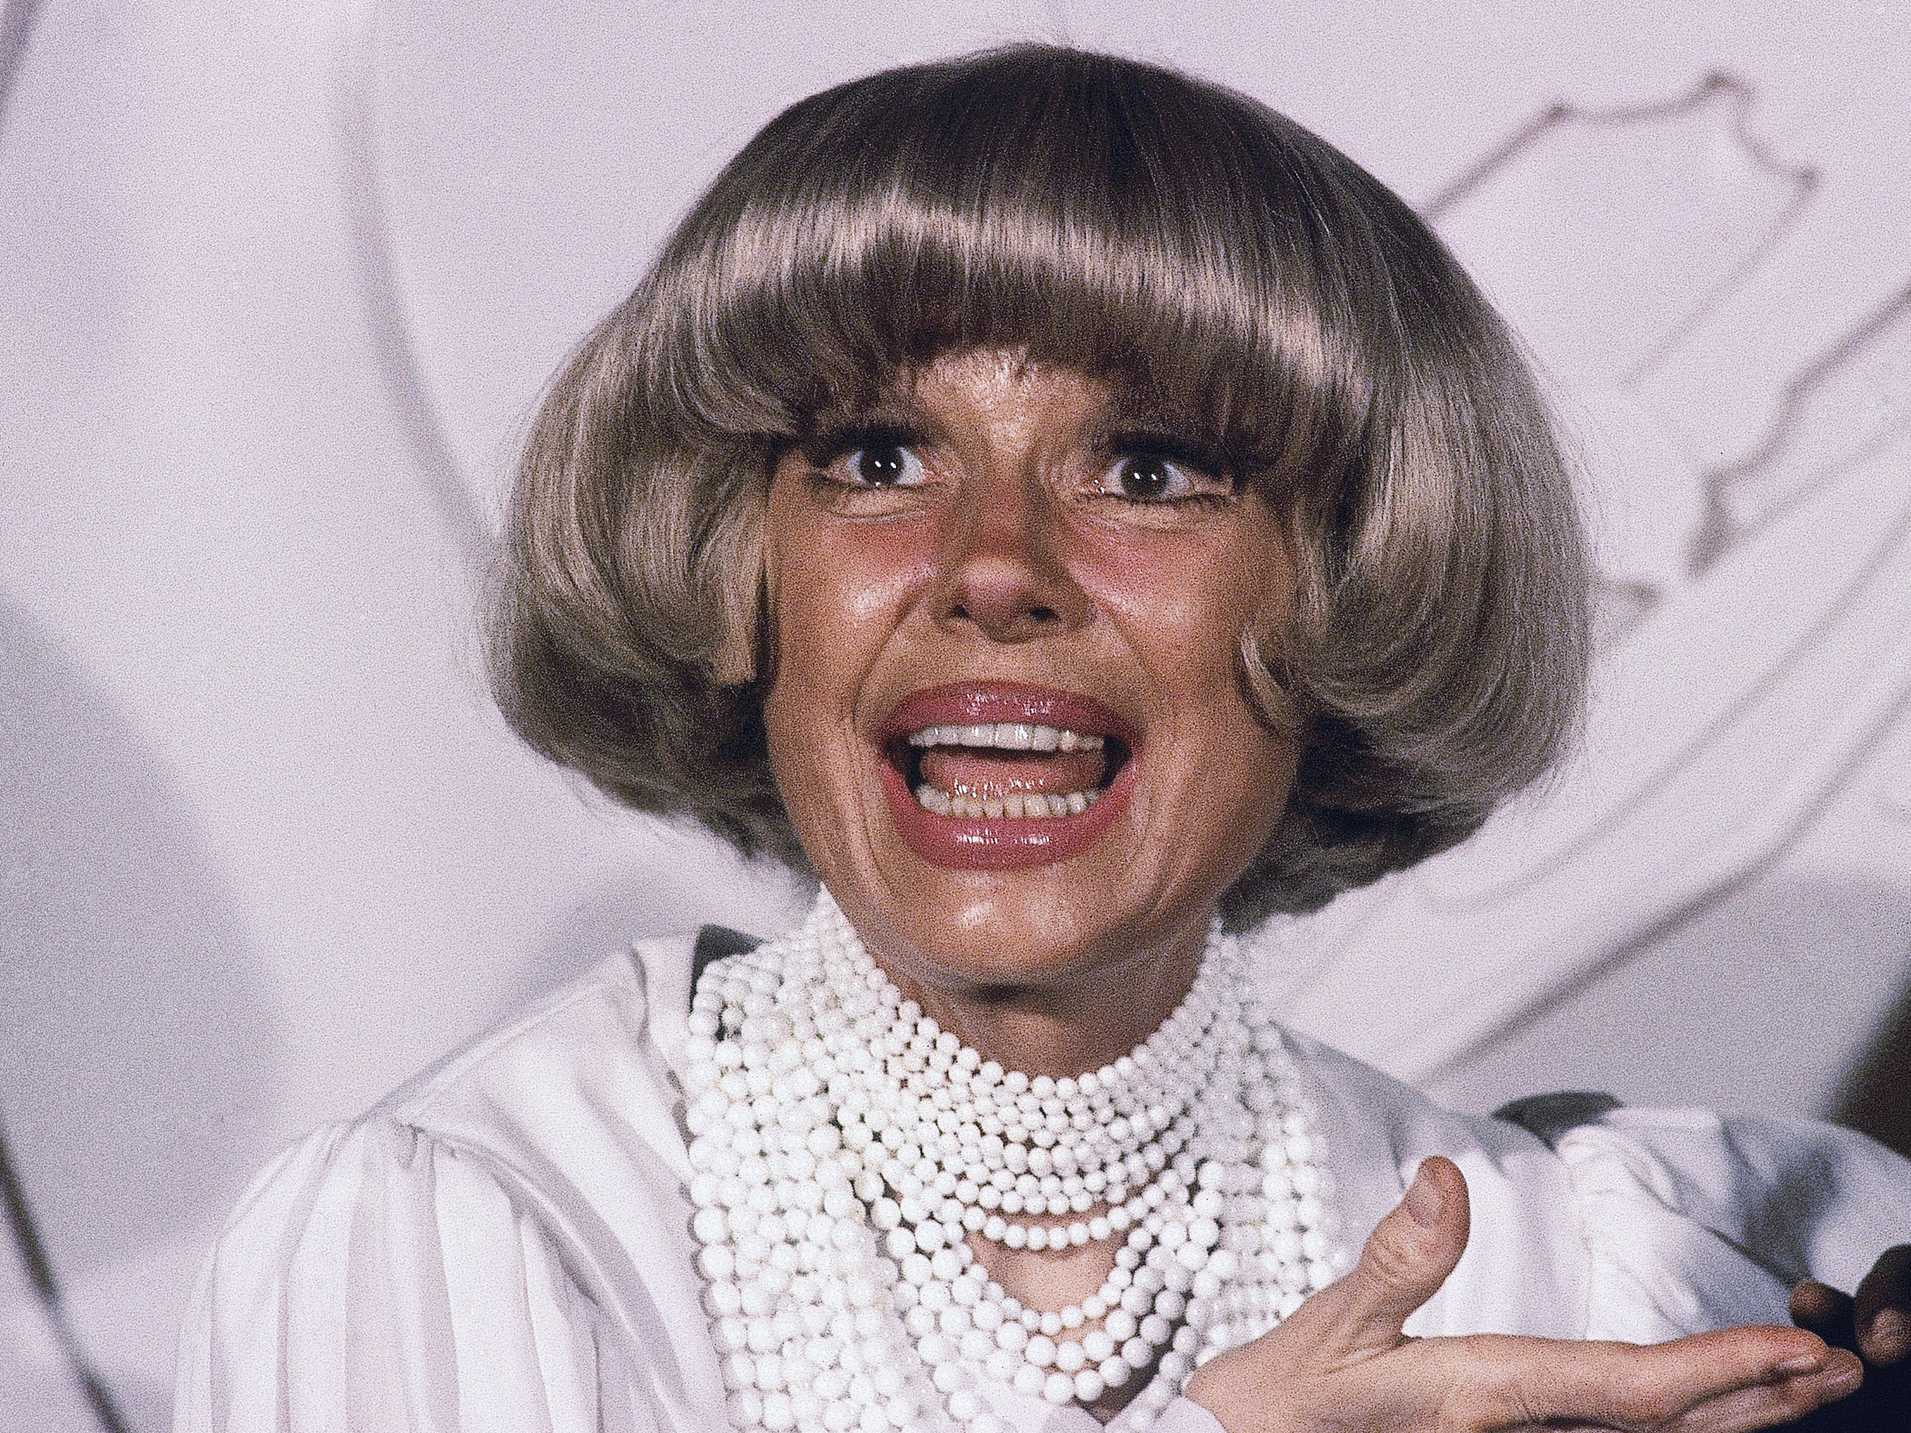 Broadway Theaters to Dim Lights to Honor Carol Channing